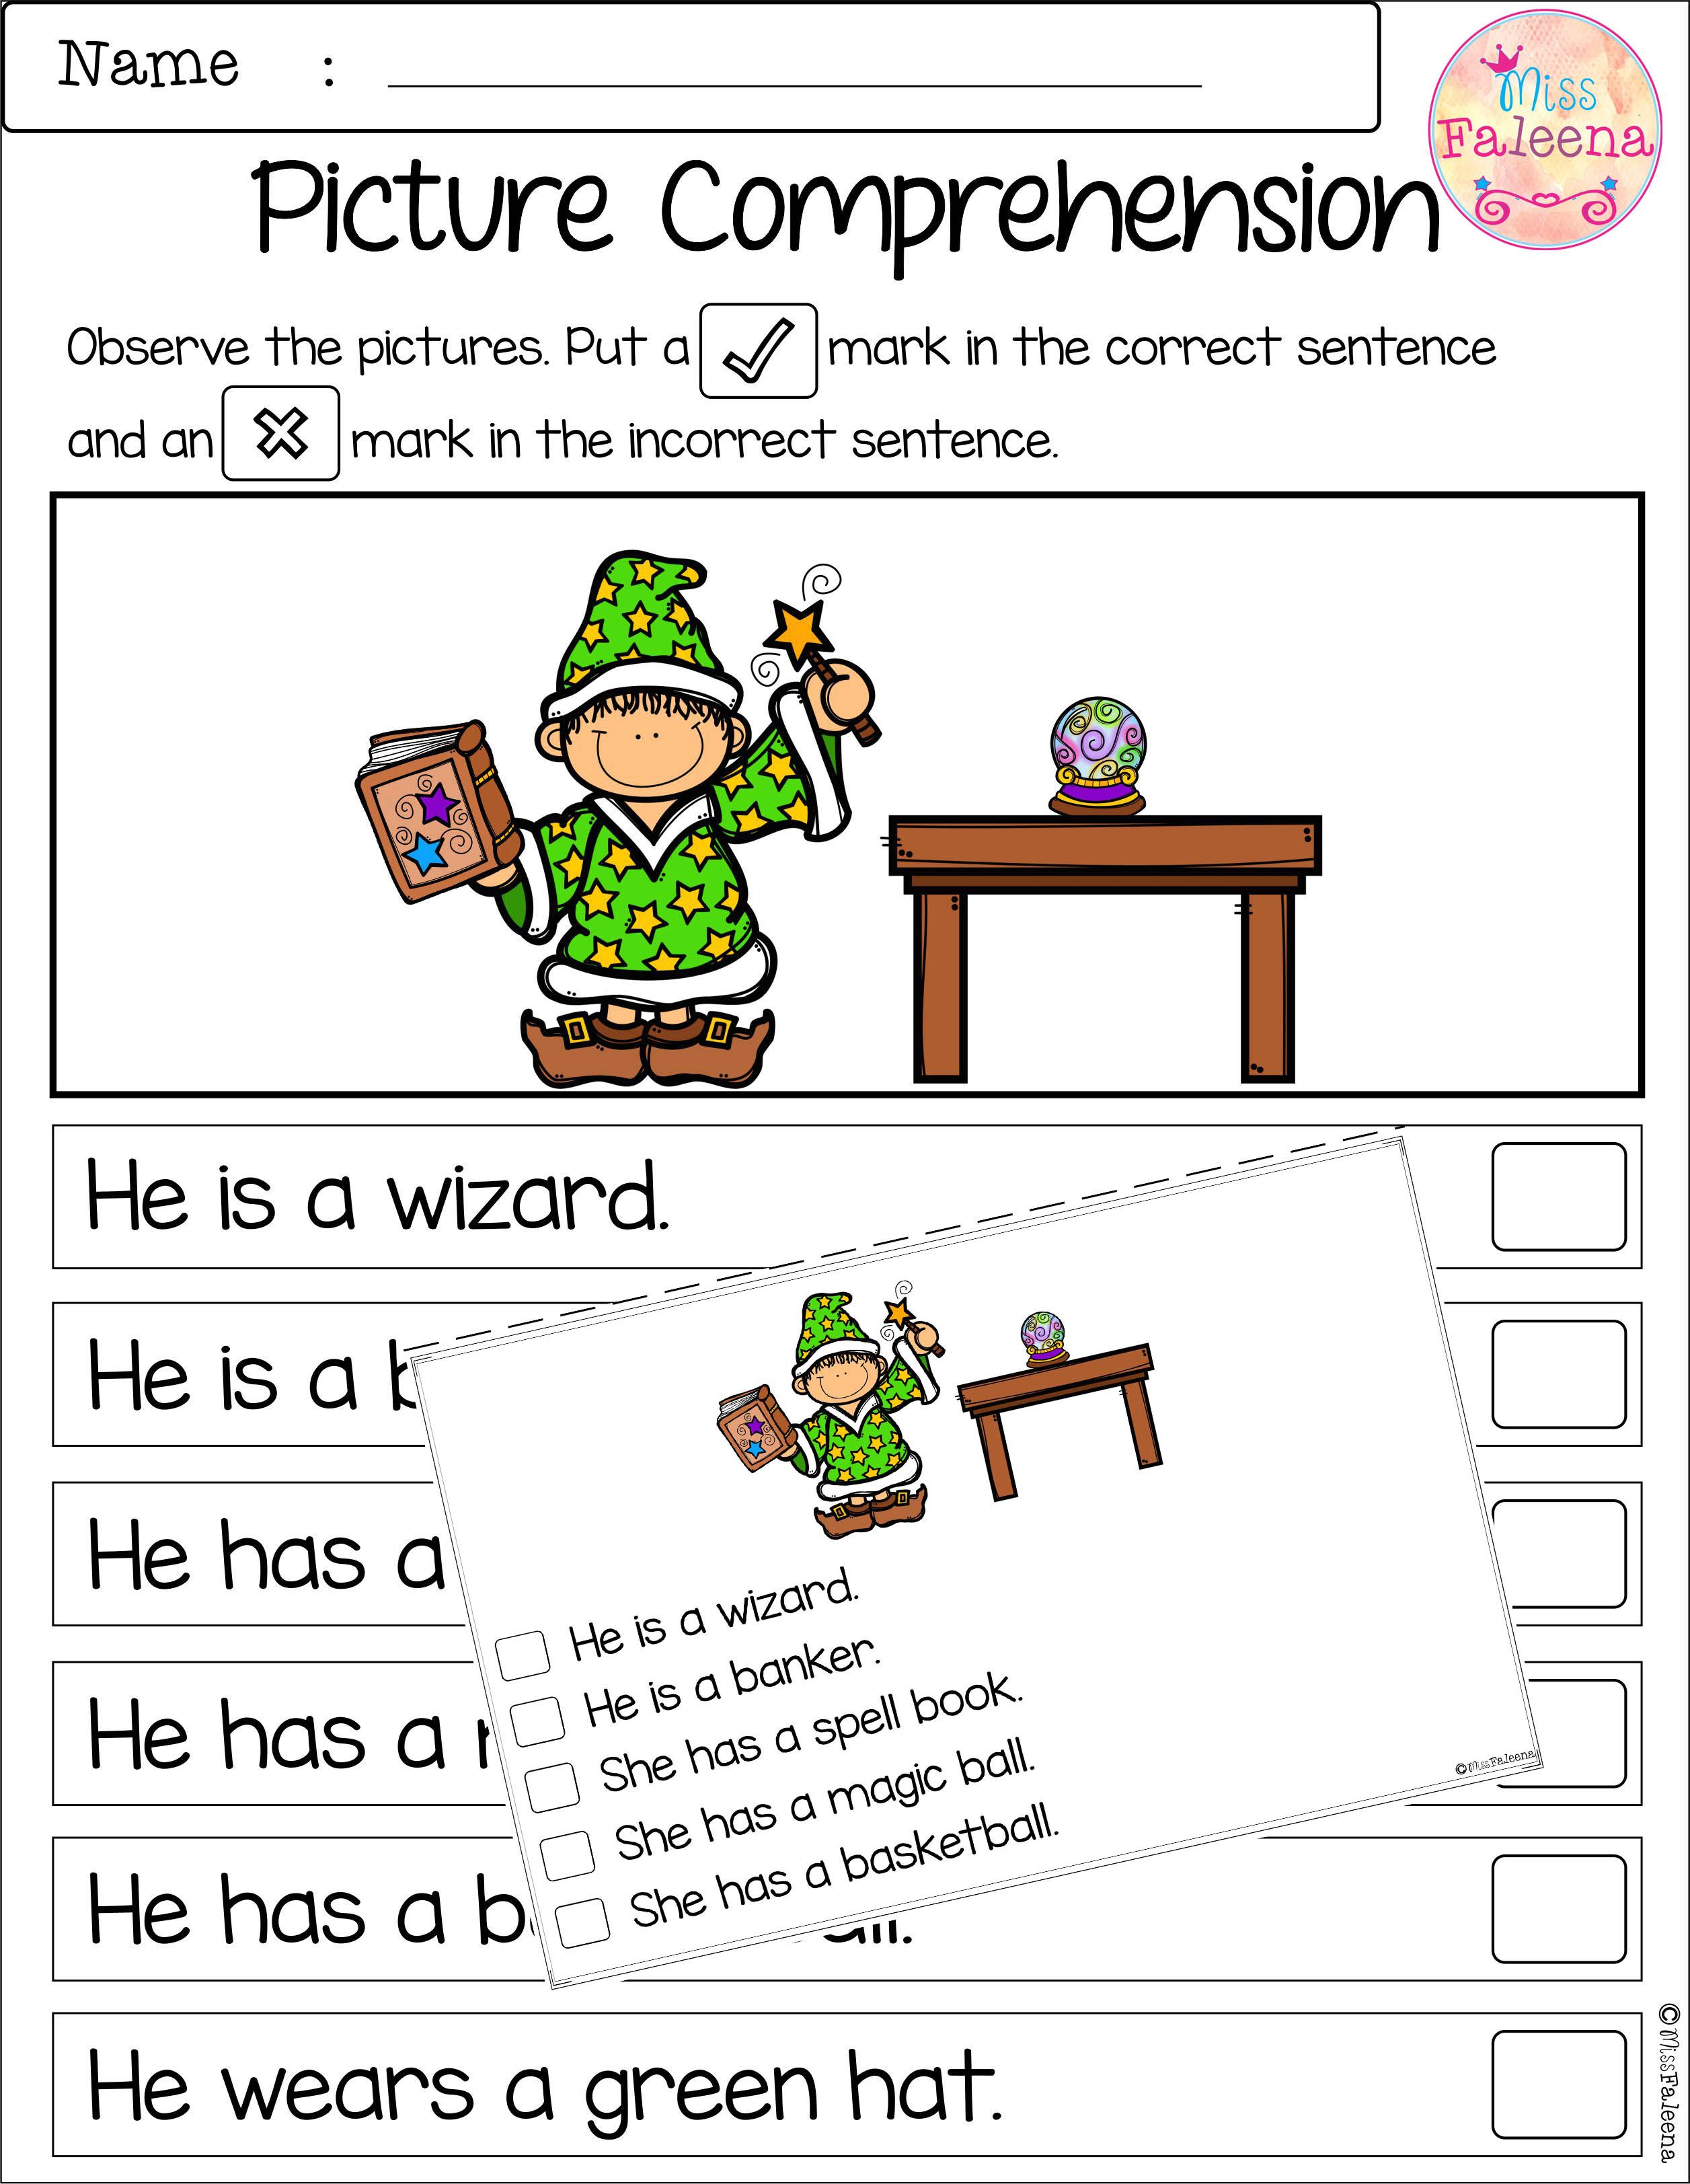 Free Picture Comprehension Cards And Worksheets There Are 4 Cards And 4 Worksheets Of Picture Comprehension First Grade Freebies Special Education Elementary [ 3247 x 2513 Pixel ]